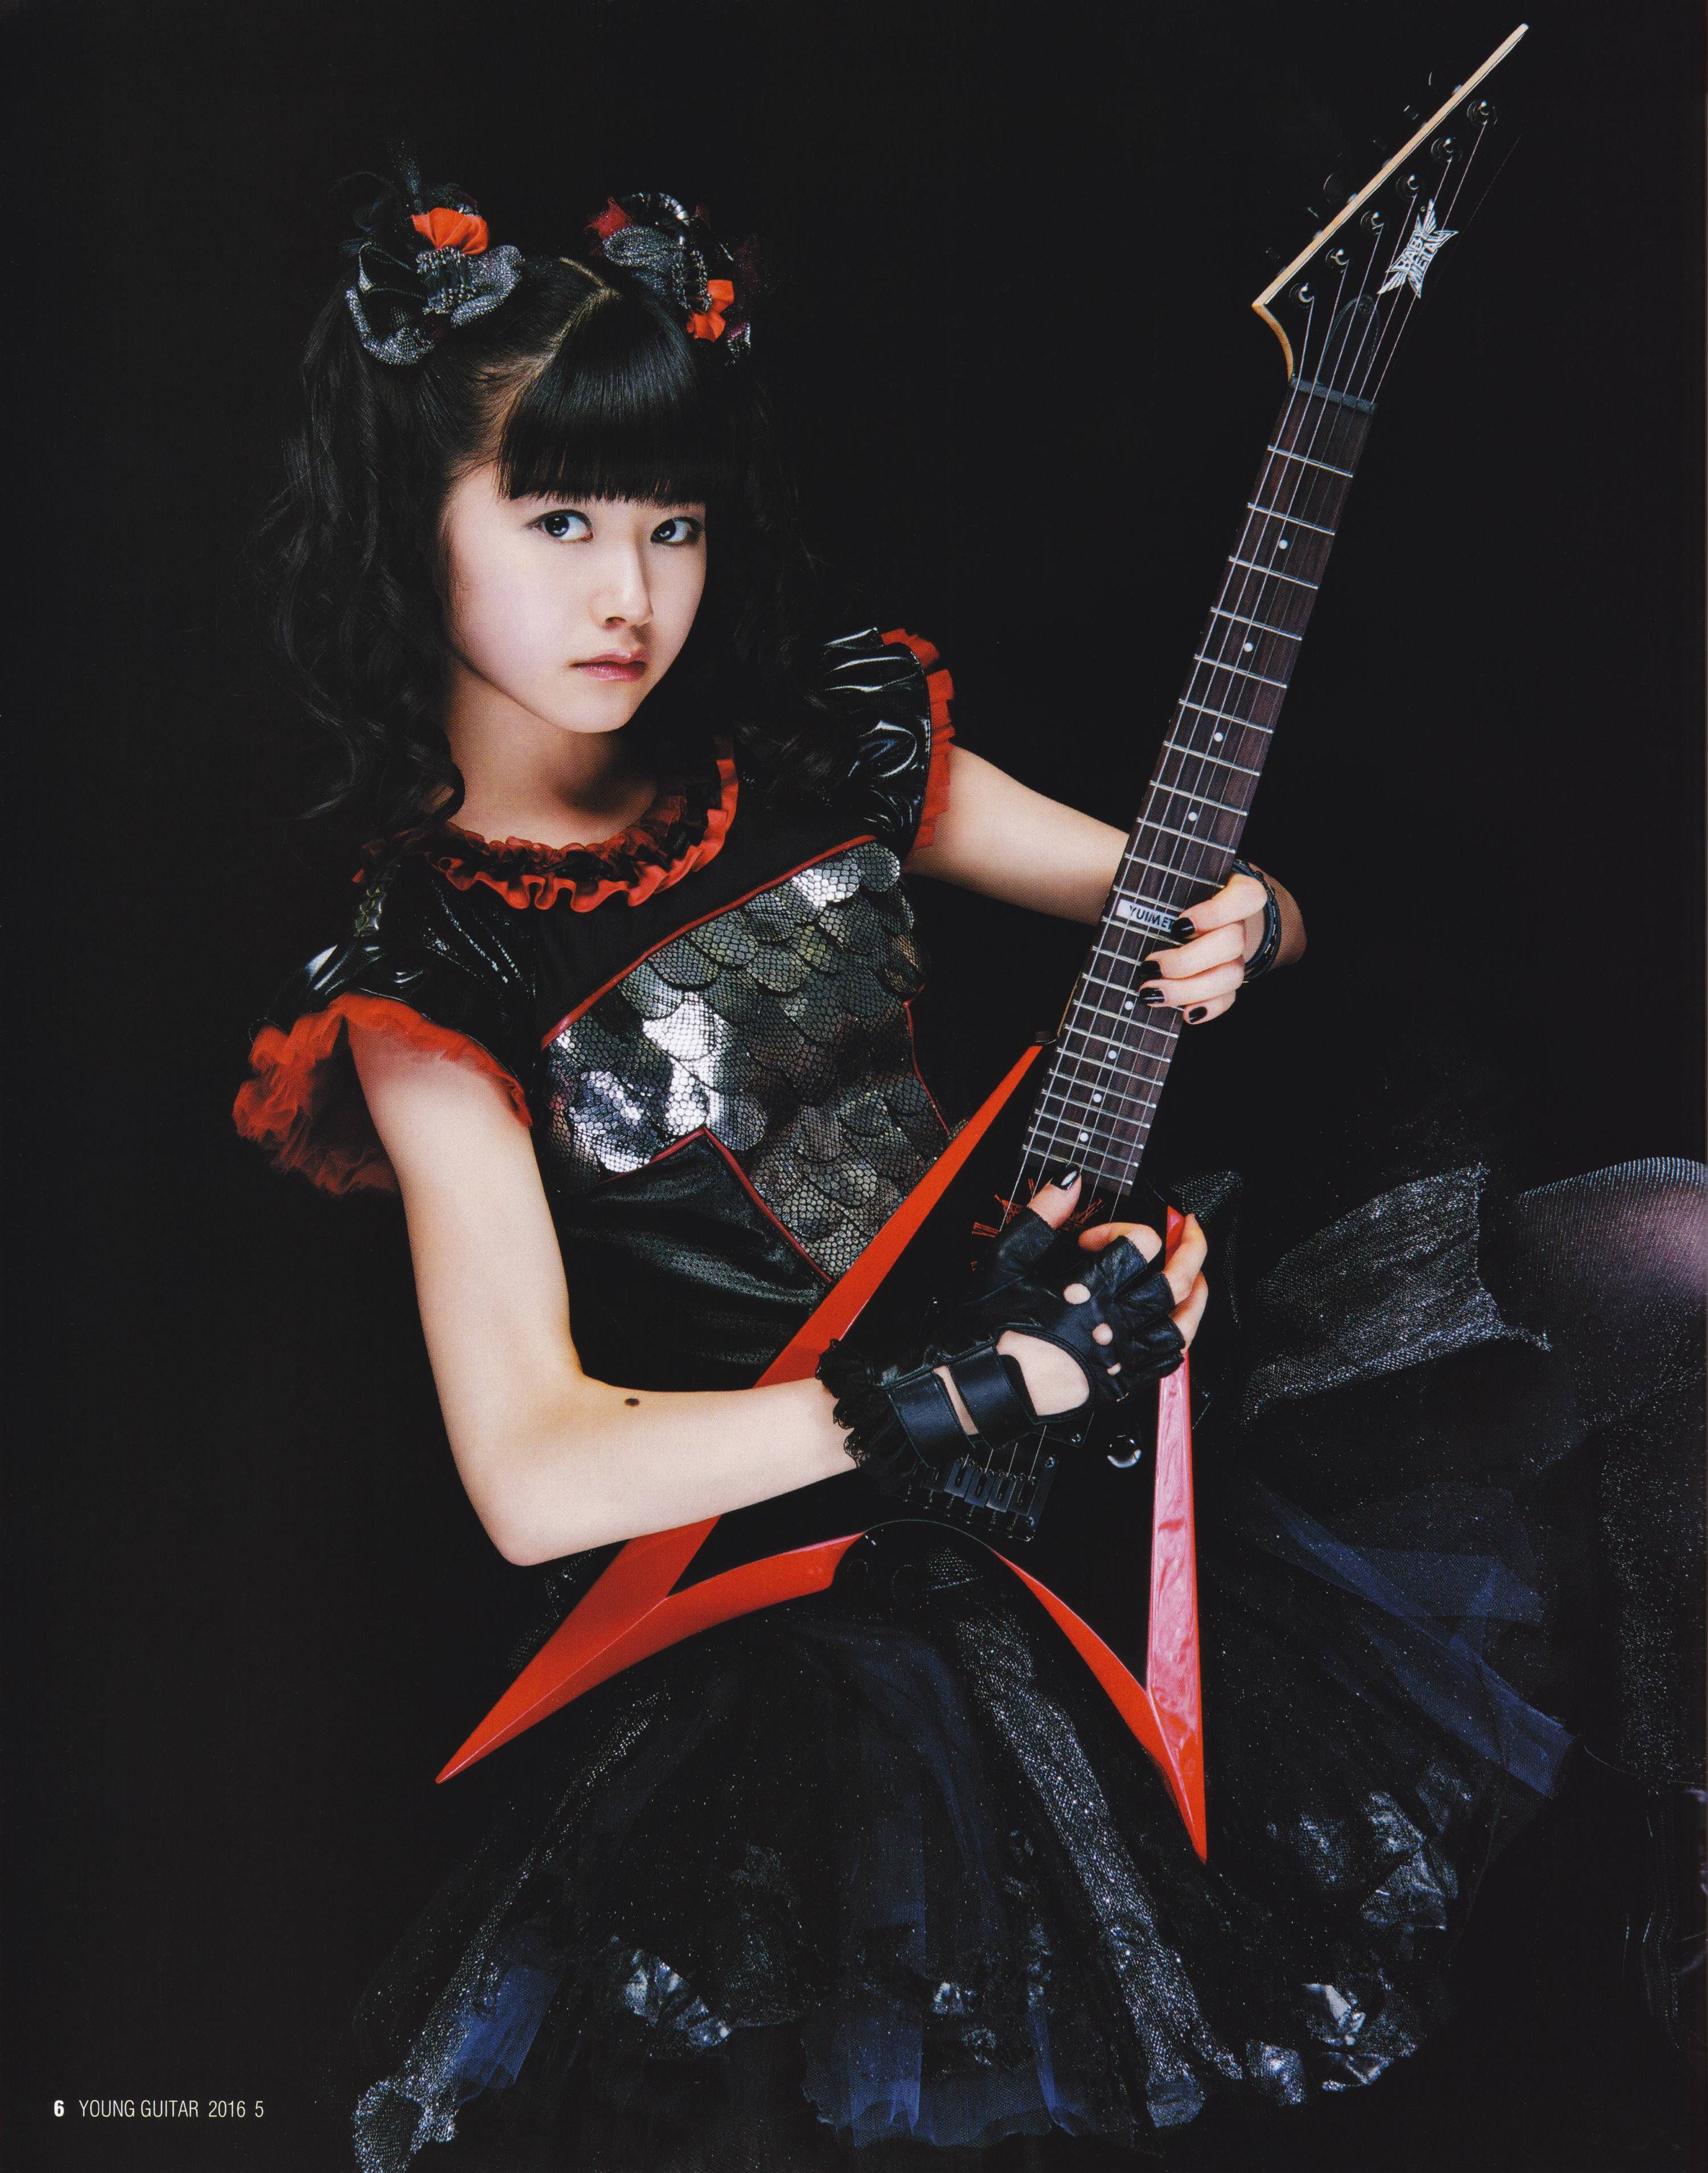 Fingerless gloves for guitarists - 2016 04 09 Babymetal On Young Guitar Magazine April